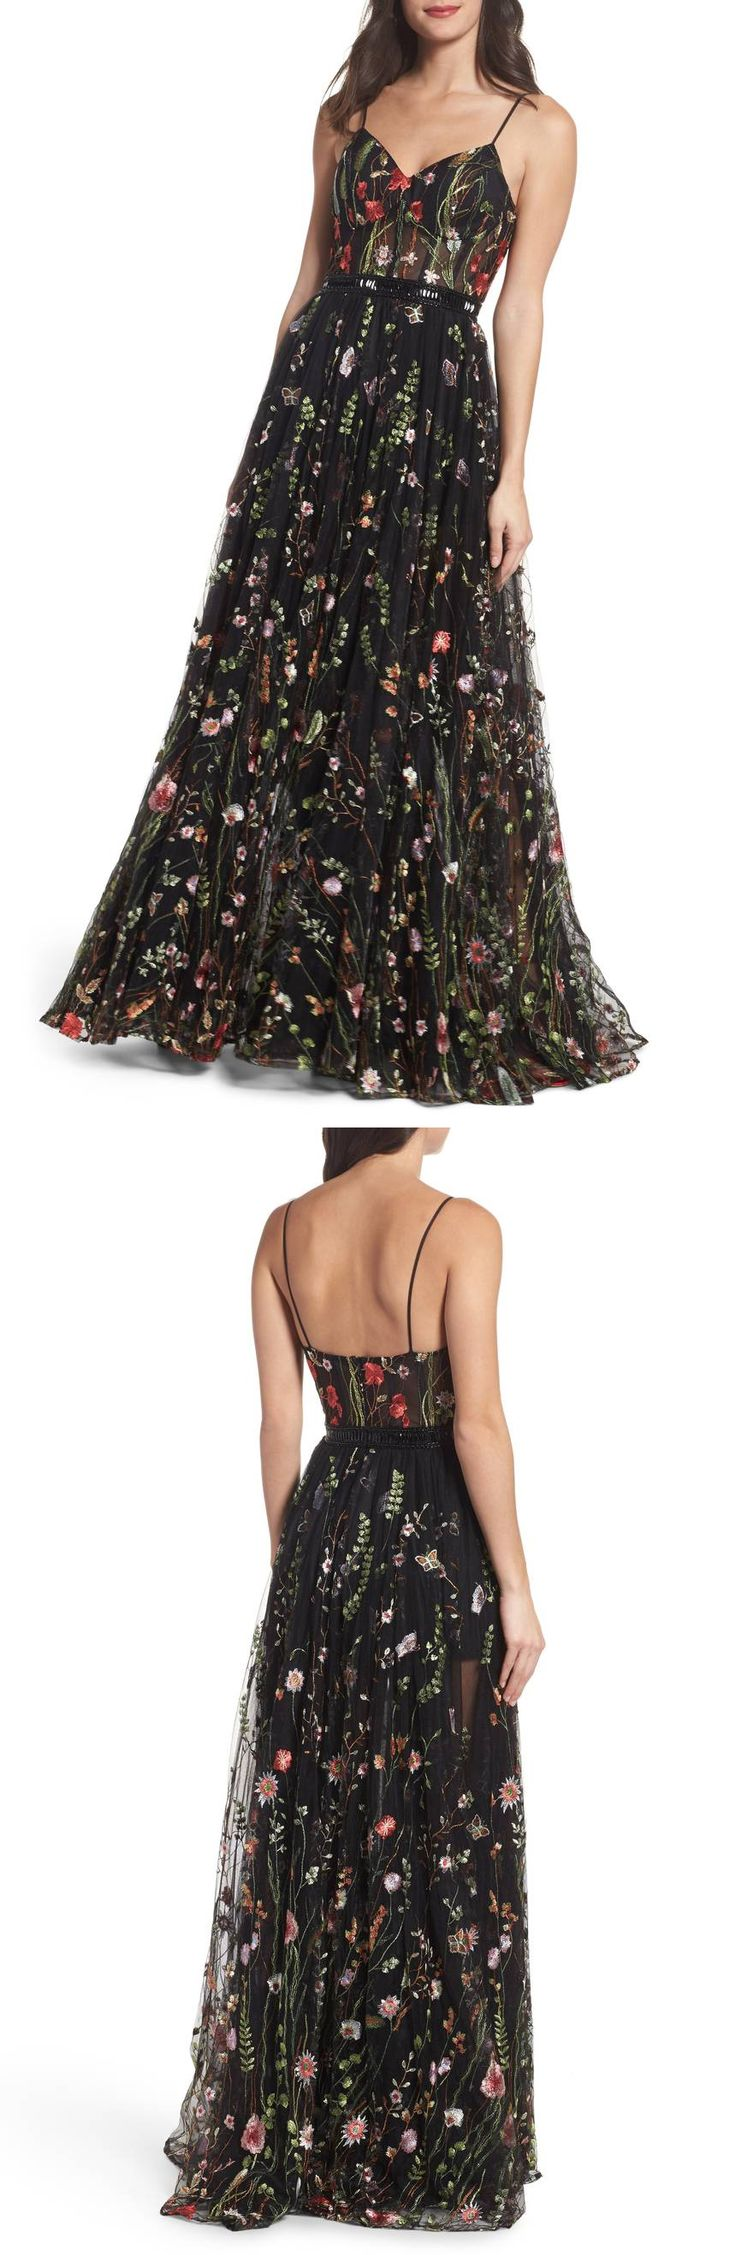 Black Embroidered Bustier Gown by Mac Duggal #dress  #formaldress #formalgown #eveninggown #fashion #womensfashion formal dress | formal dresses for teens |  Formal Dresses | formal dress |  Formal Dresses | Formal Dress Outfits |